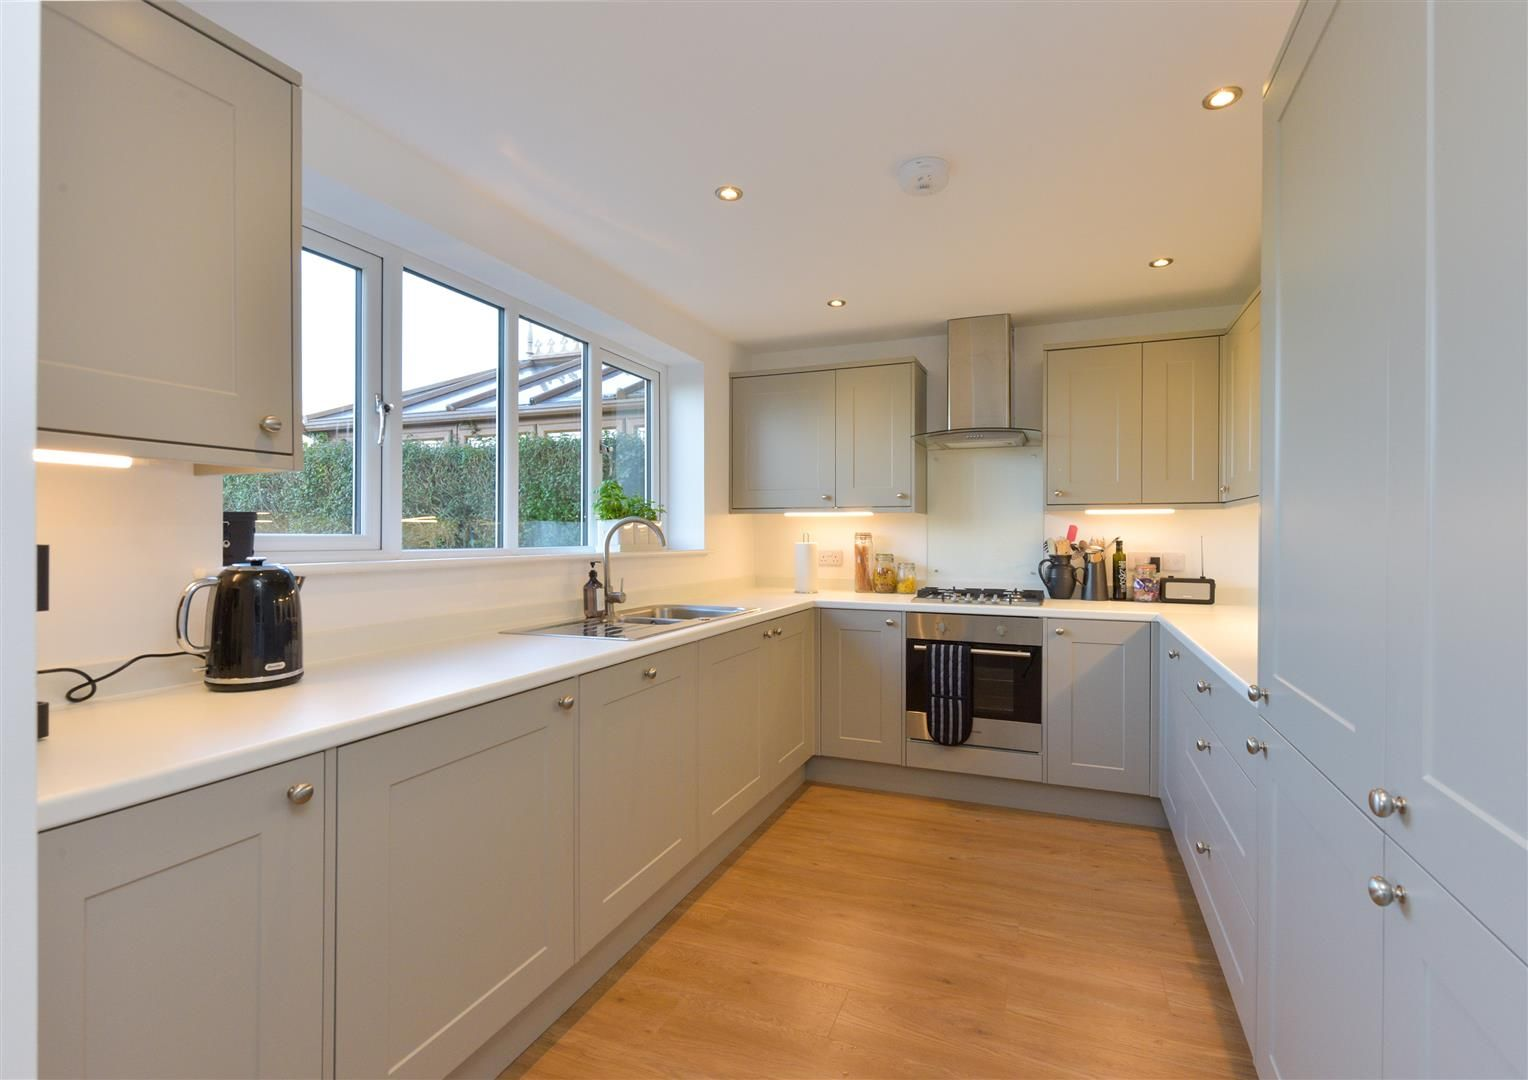 3 bed house for sale in Clent  - Property Image 3